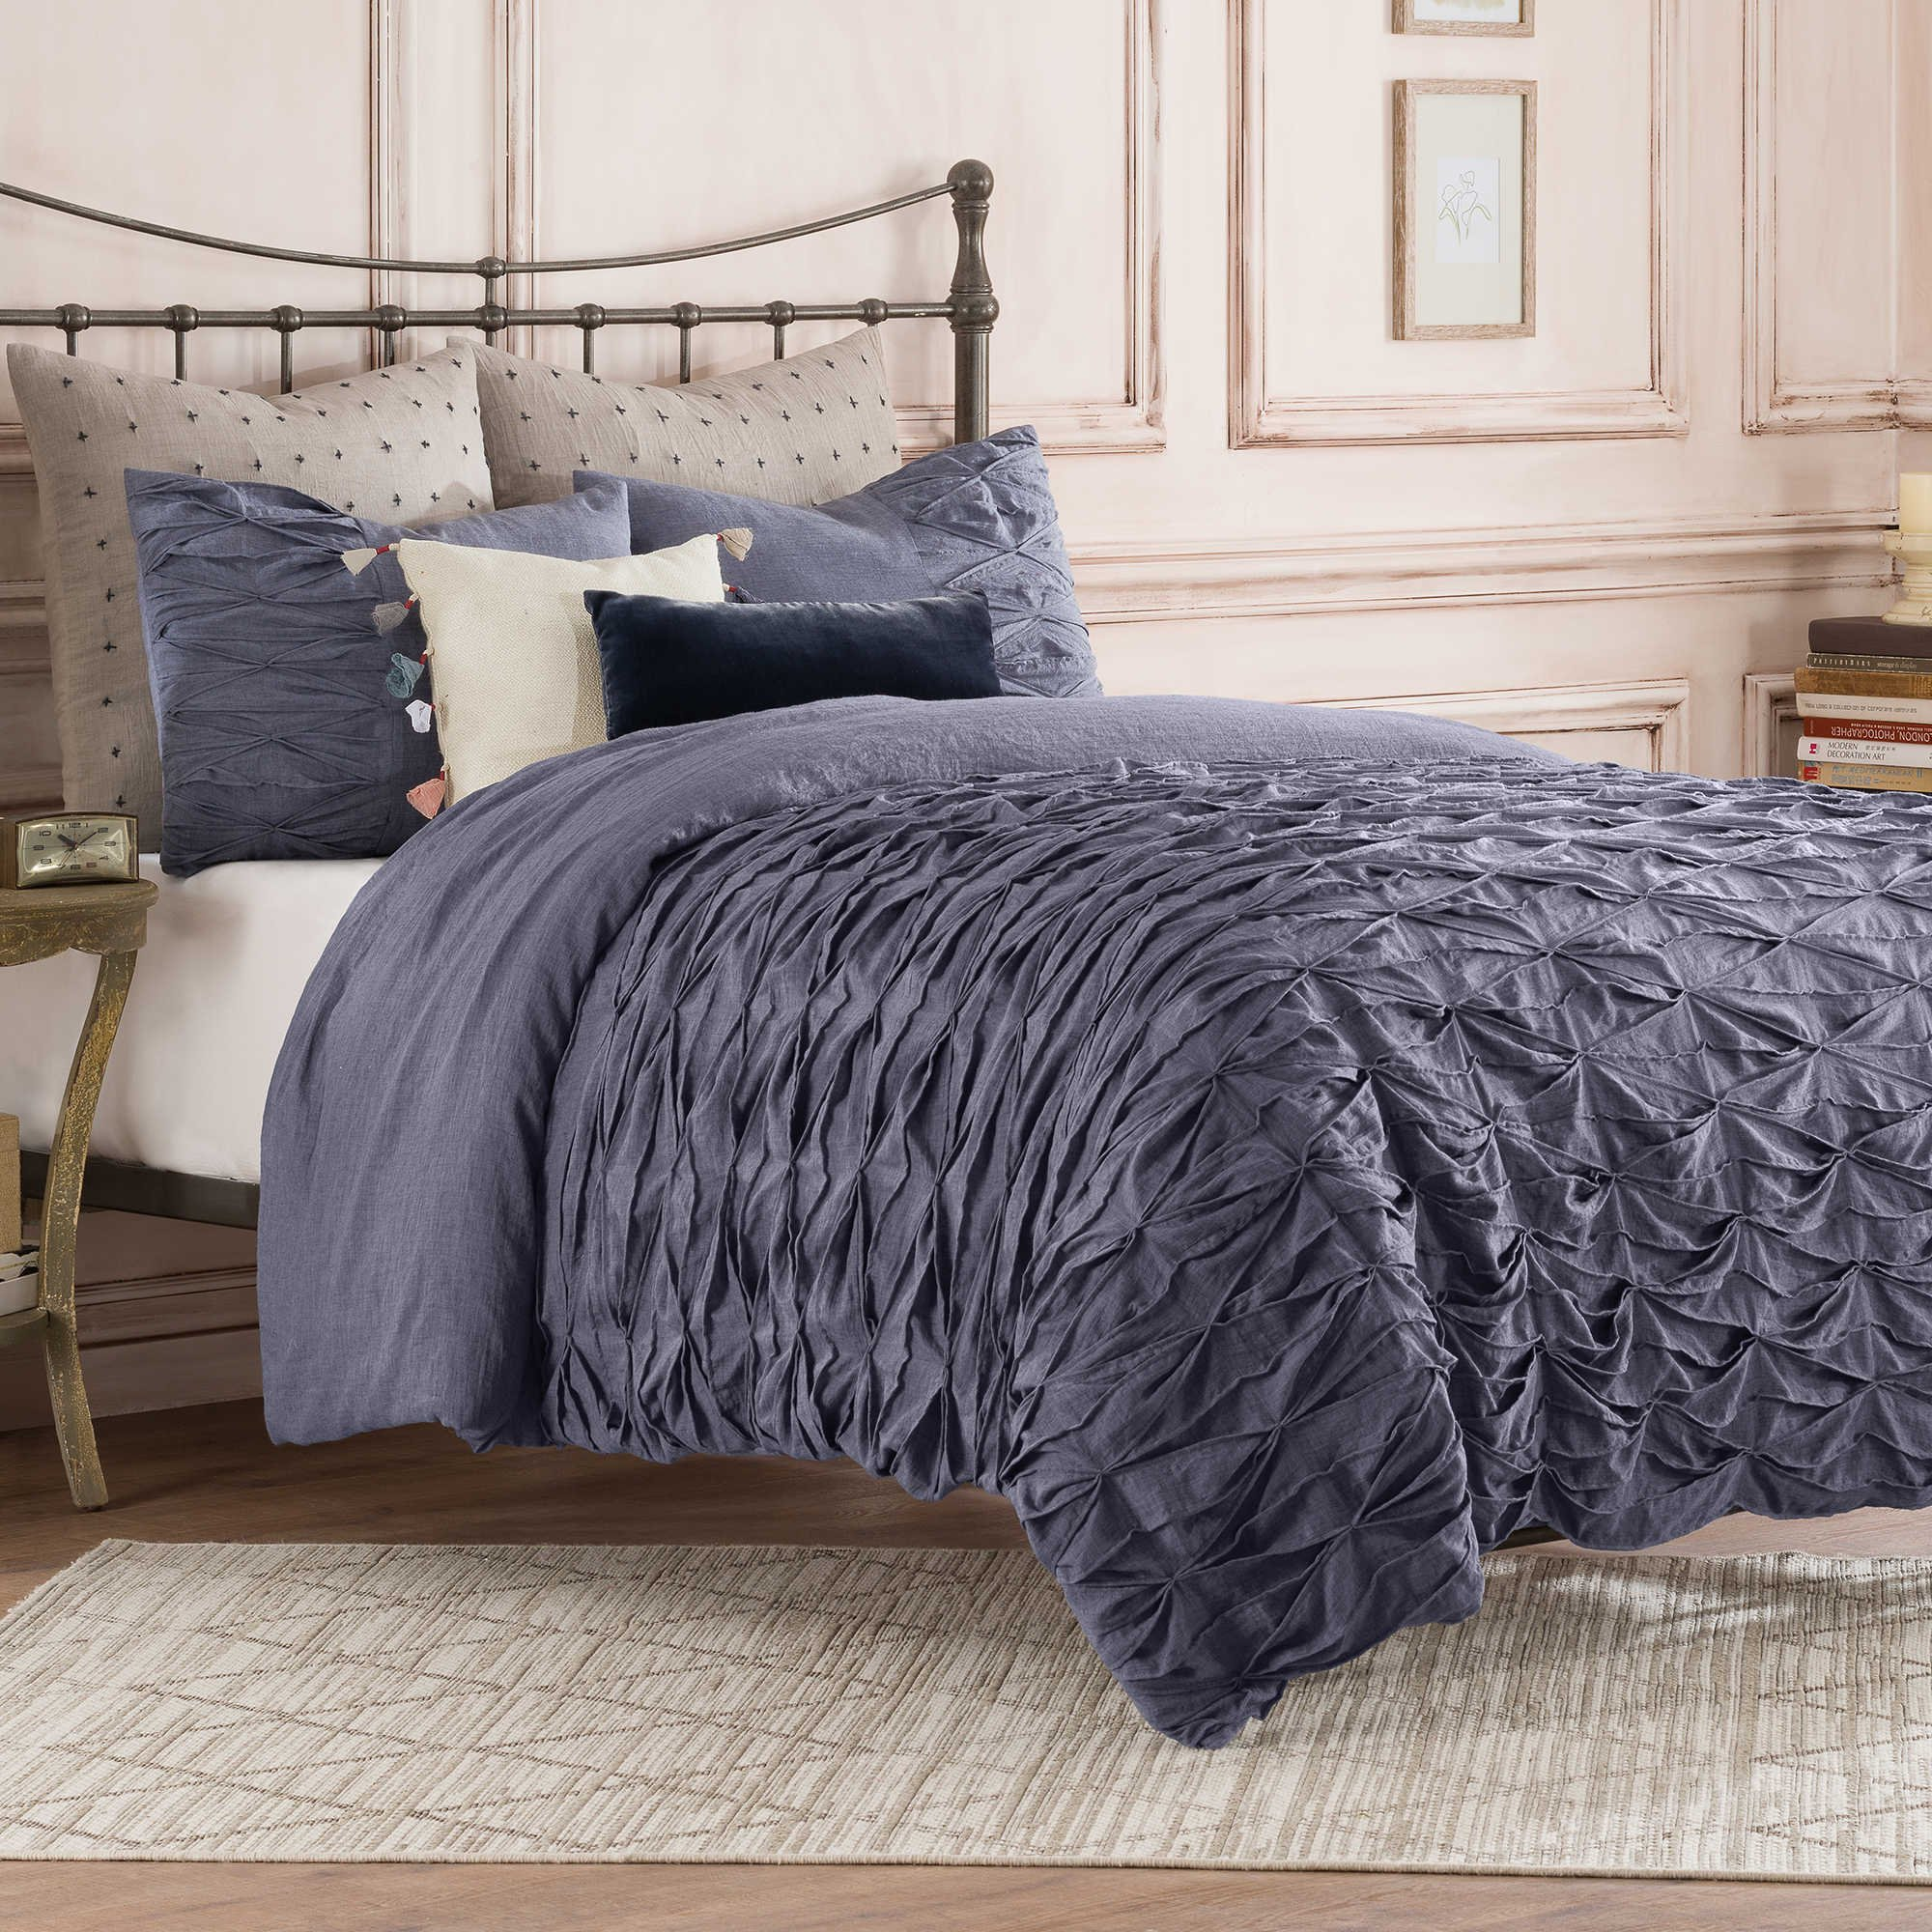 Anthology Full Queen Size Duvet Cover from the Kendall Bedding Collection in an Indigo Color